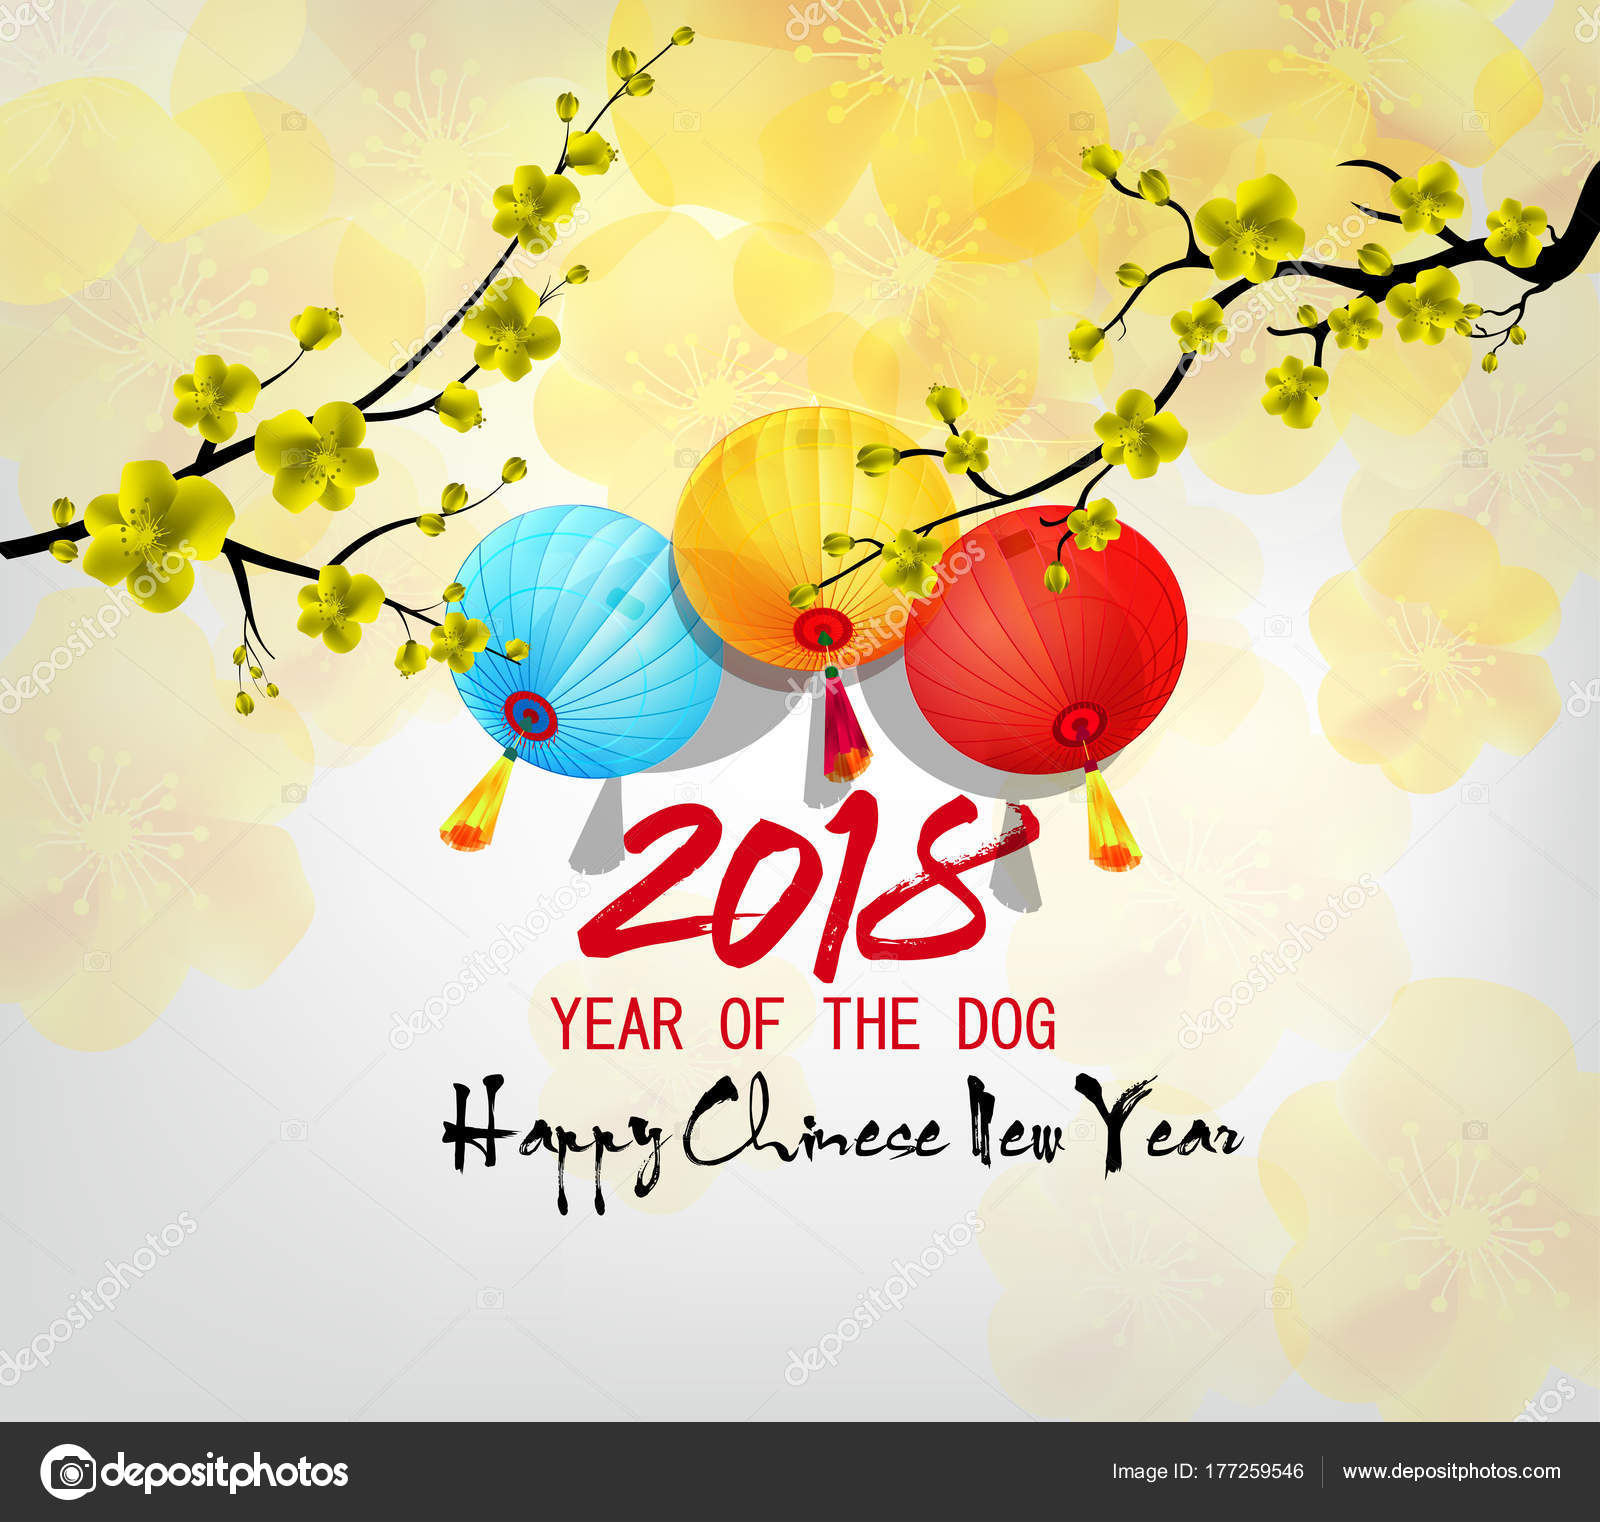 happy new year 2018 greeting card chinese new year dog stock vector